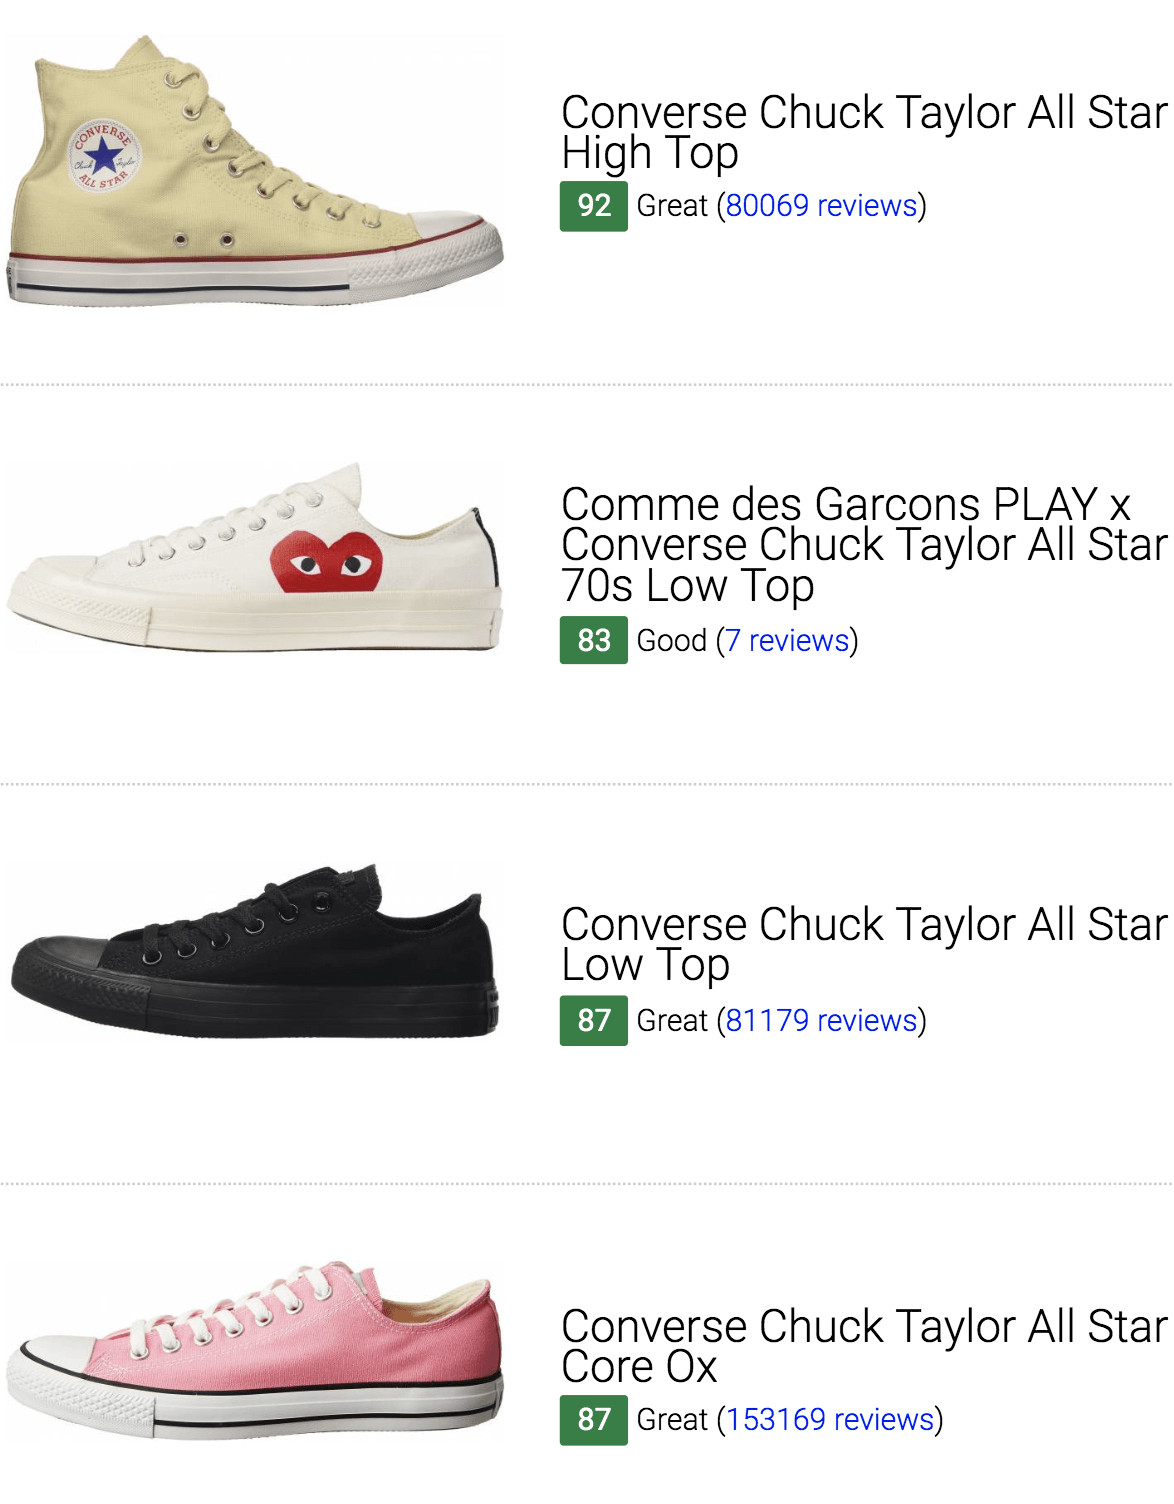 Best Converse Chuck Taylor All Star Sneakers